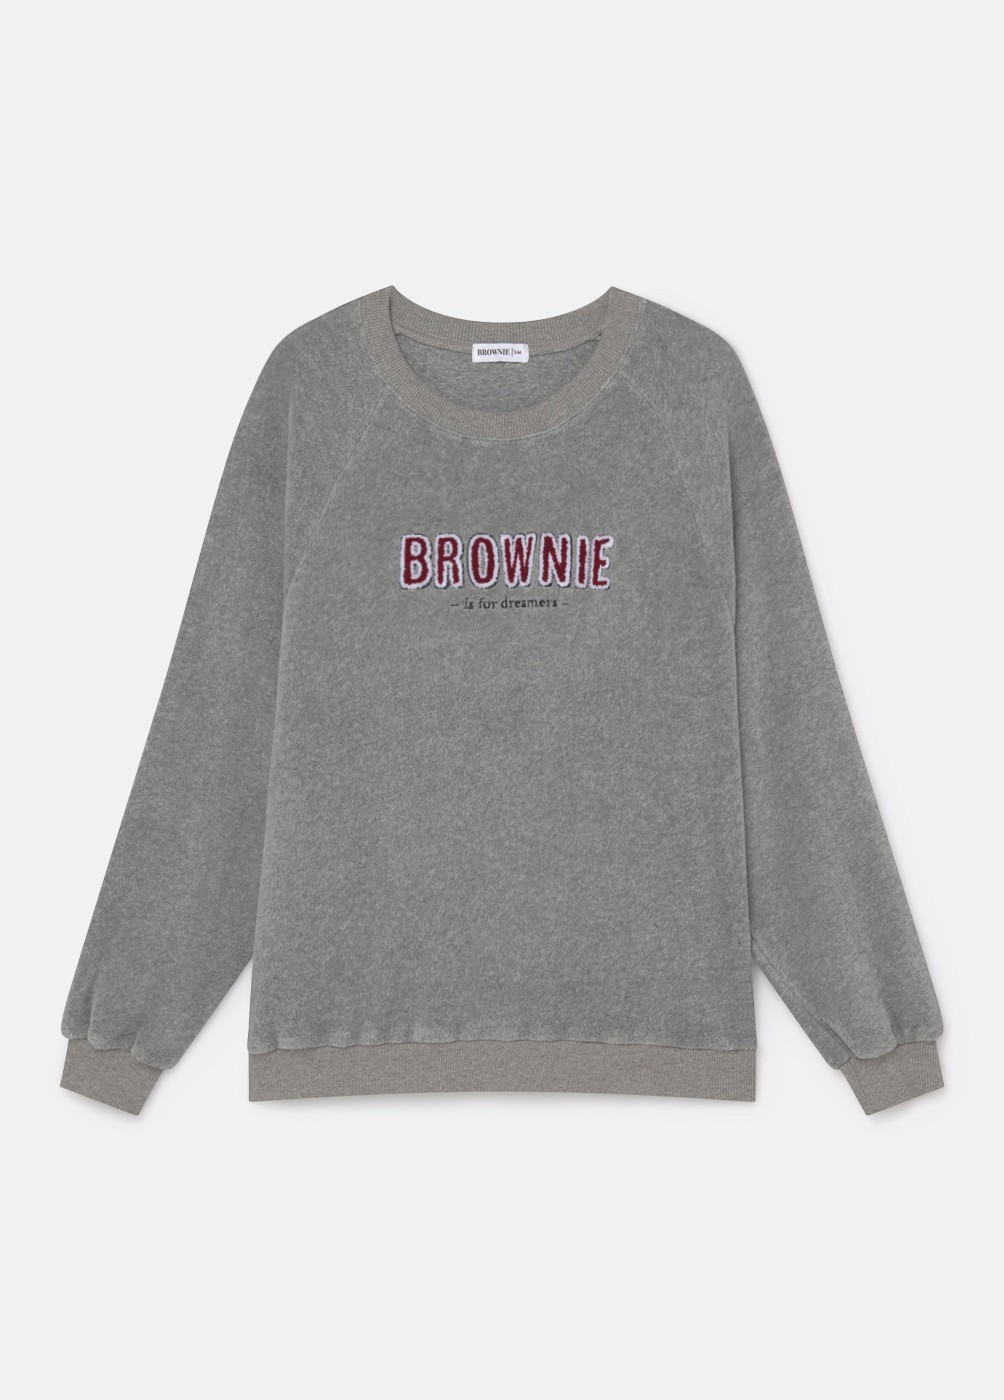 SUDADERA DREAMERS BROWNIE